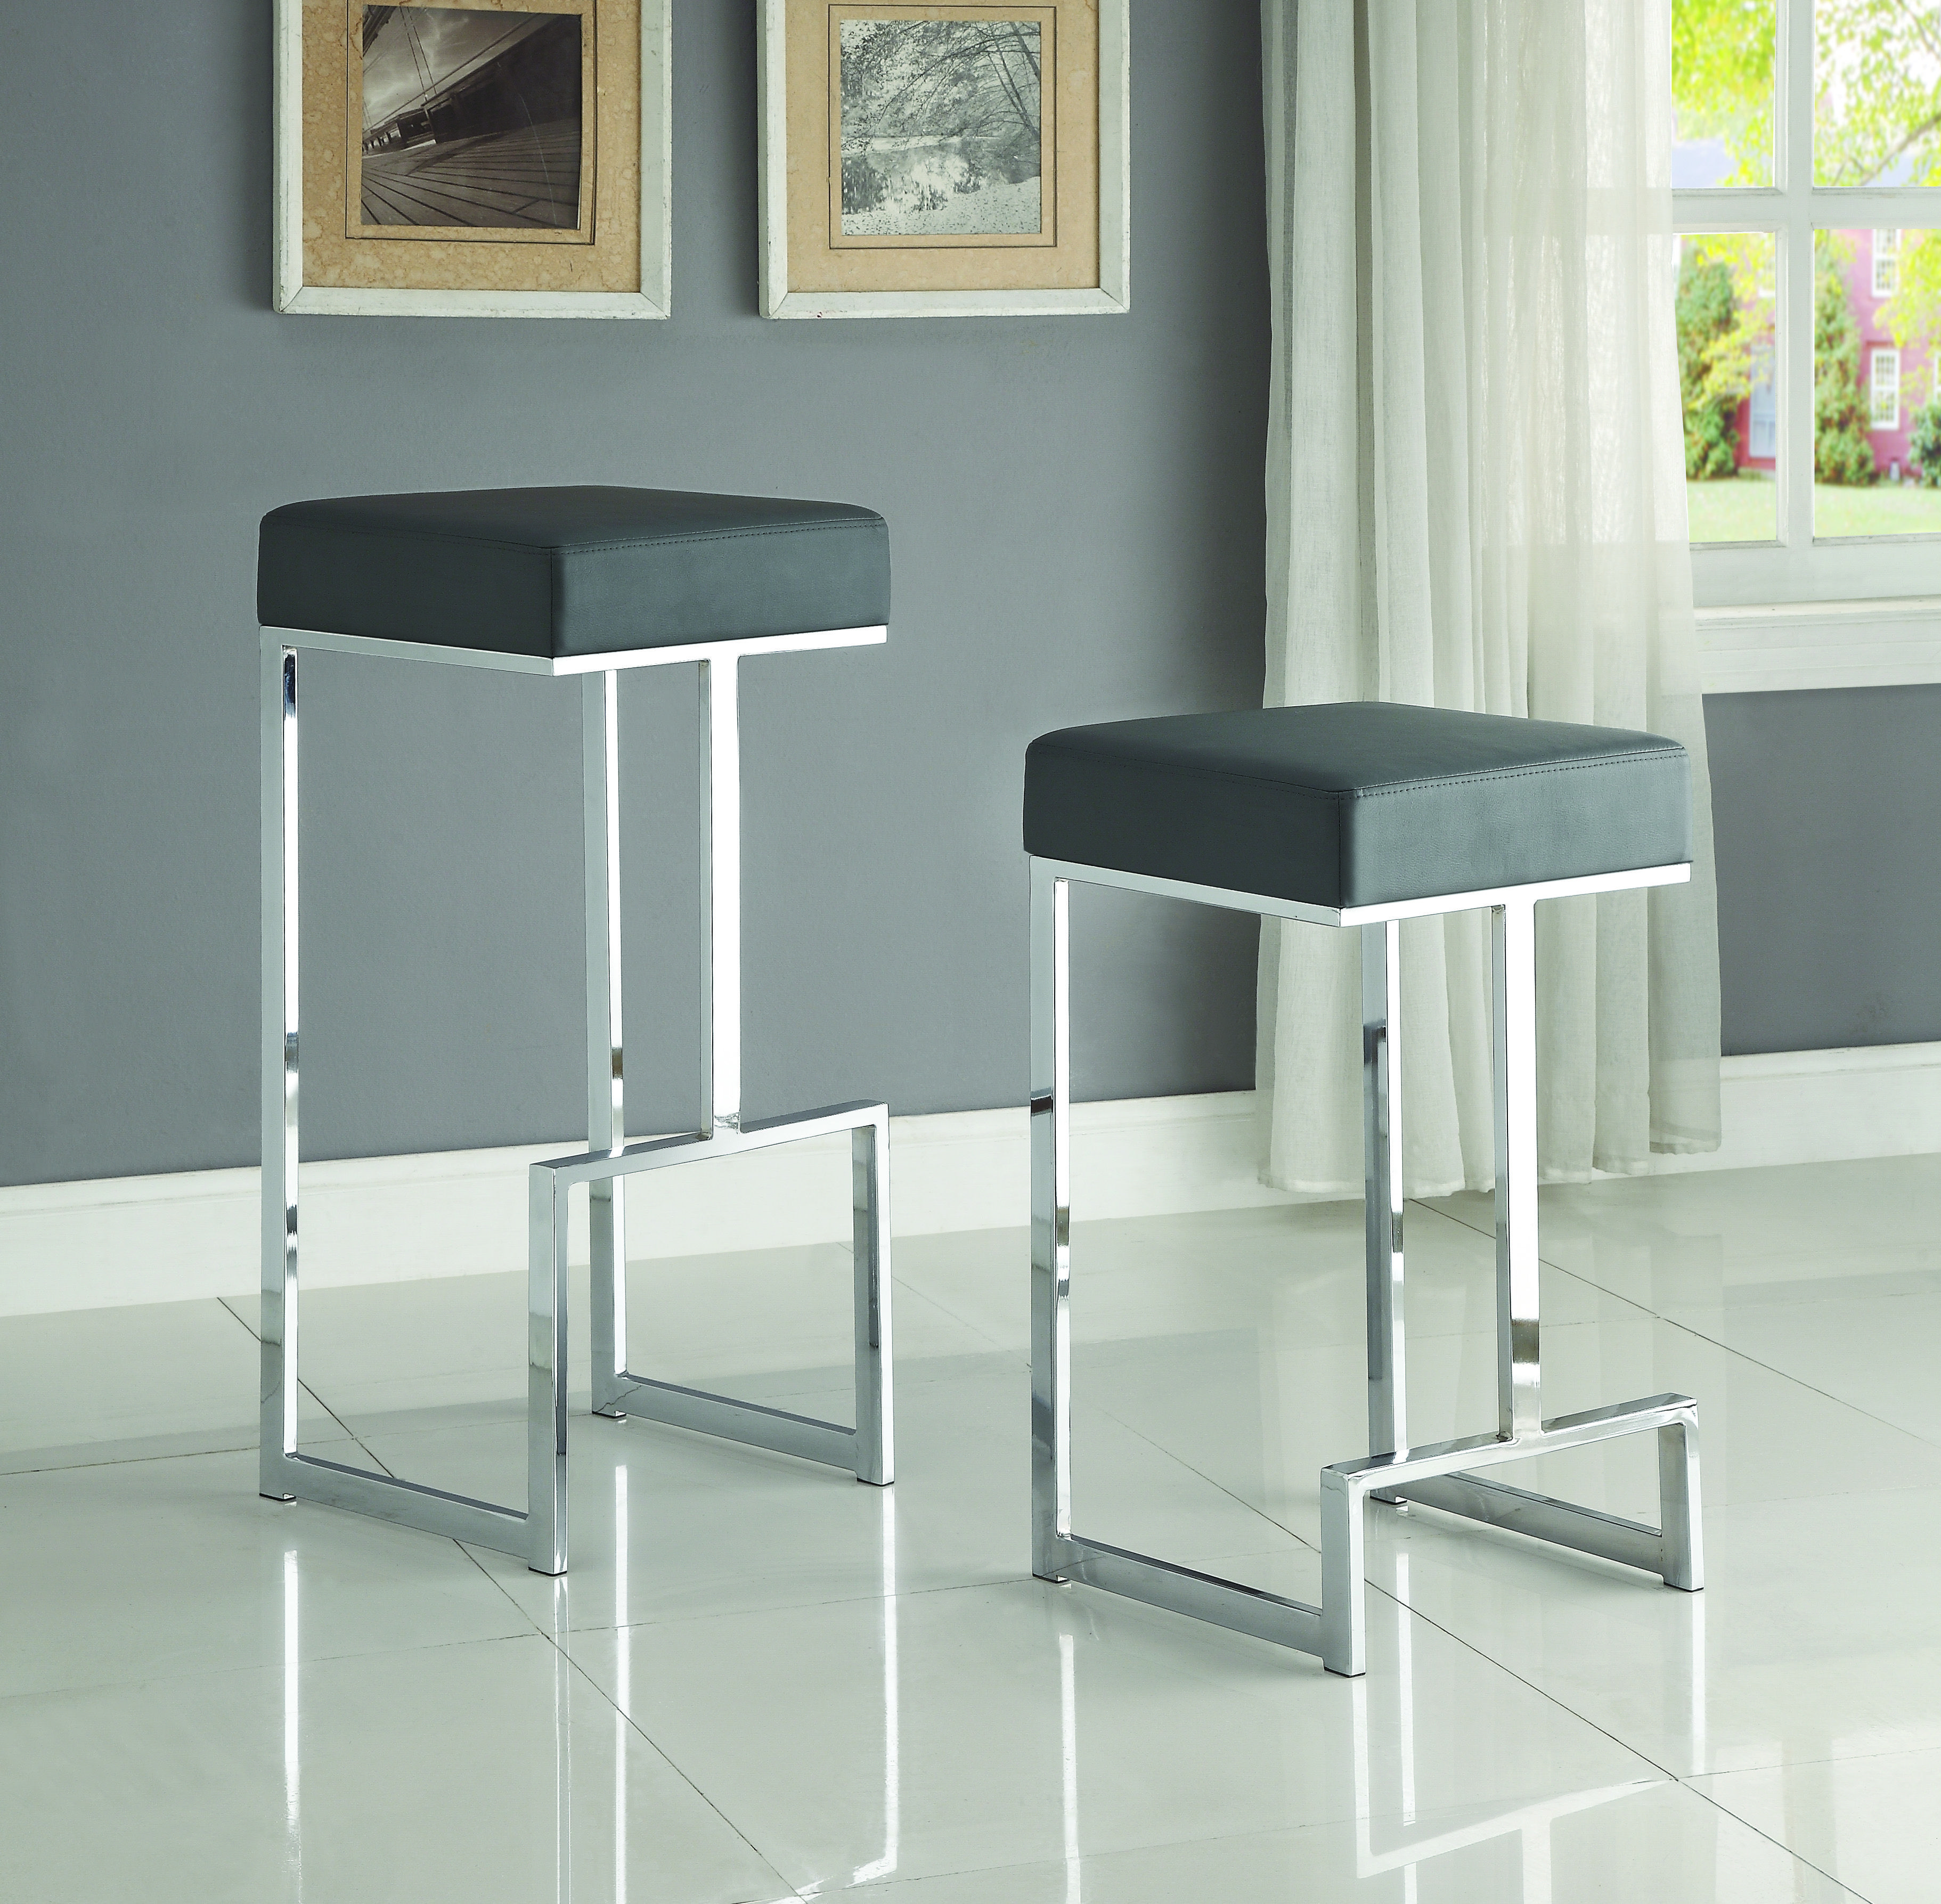 Coaster Dining Chairs and Bar Stools Contemporary Counter Height ...